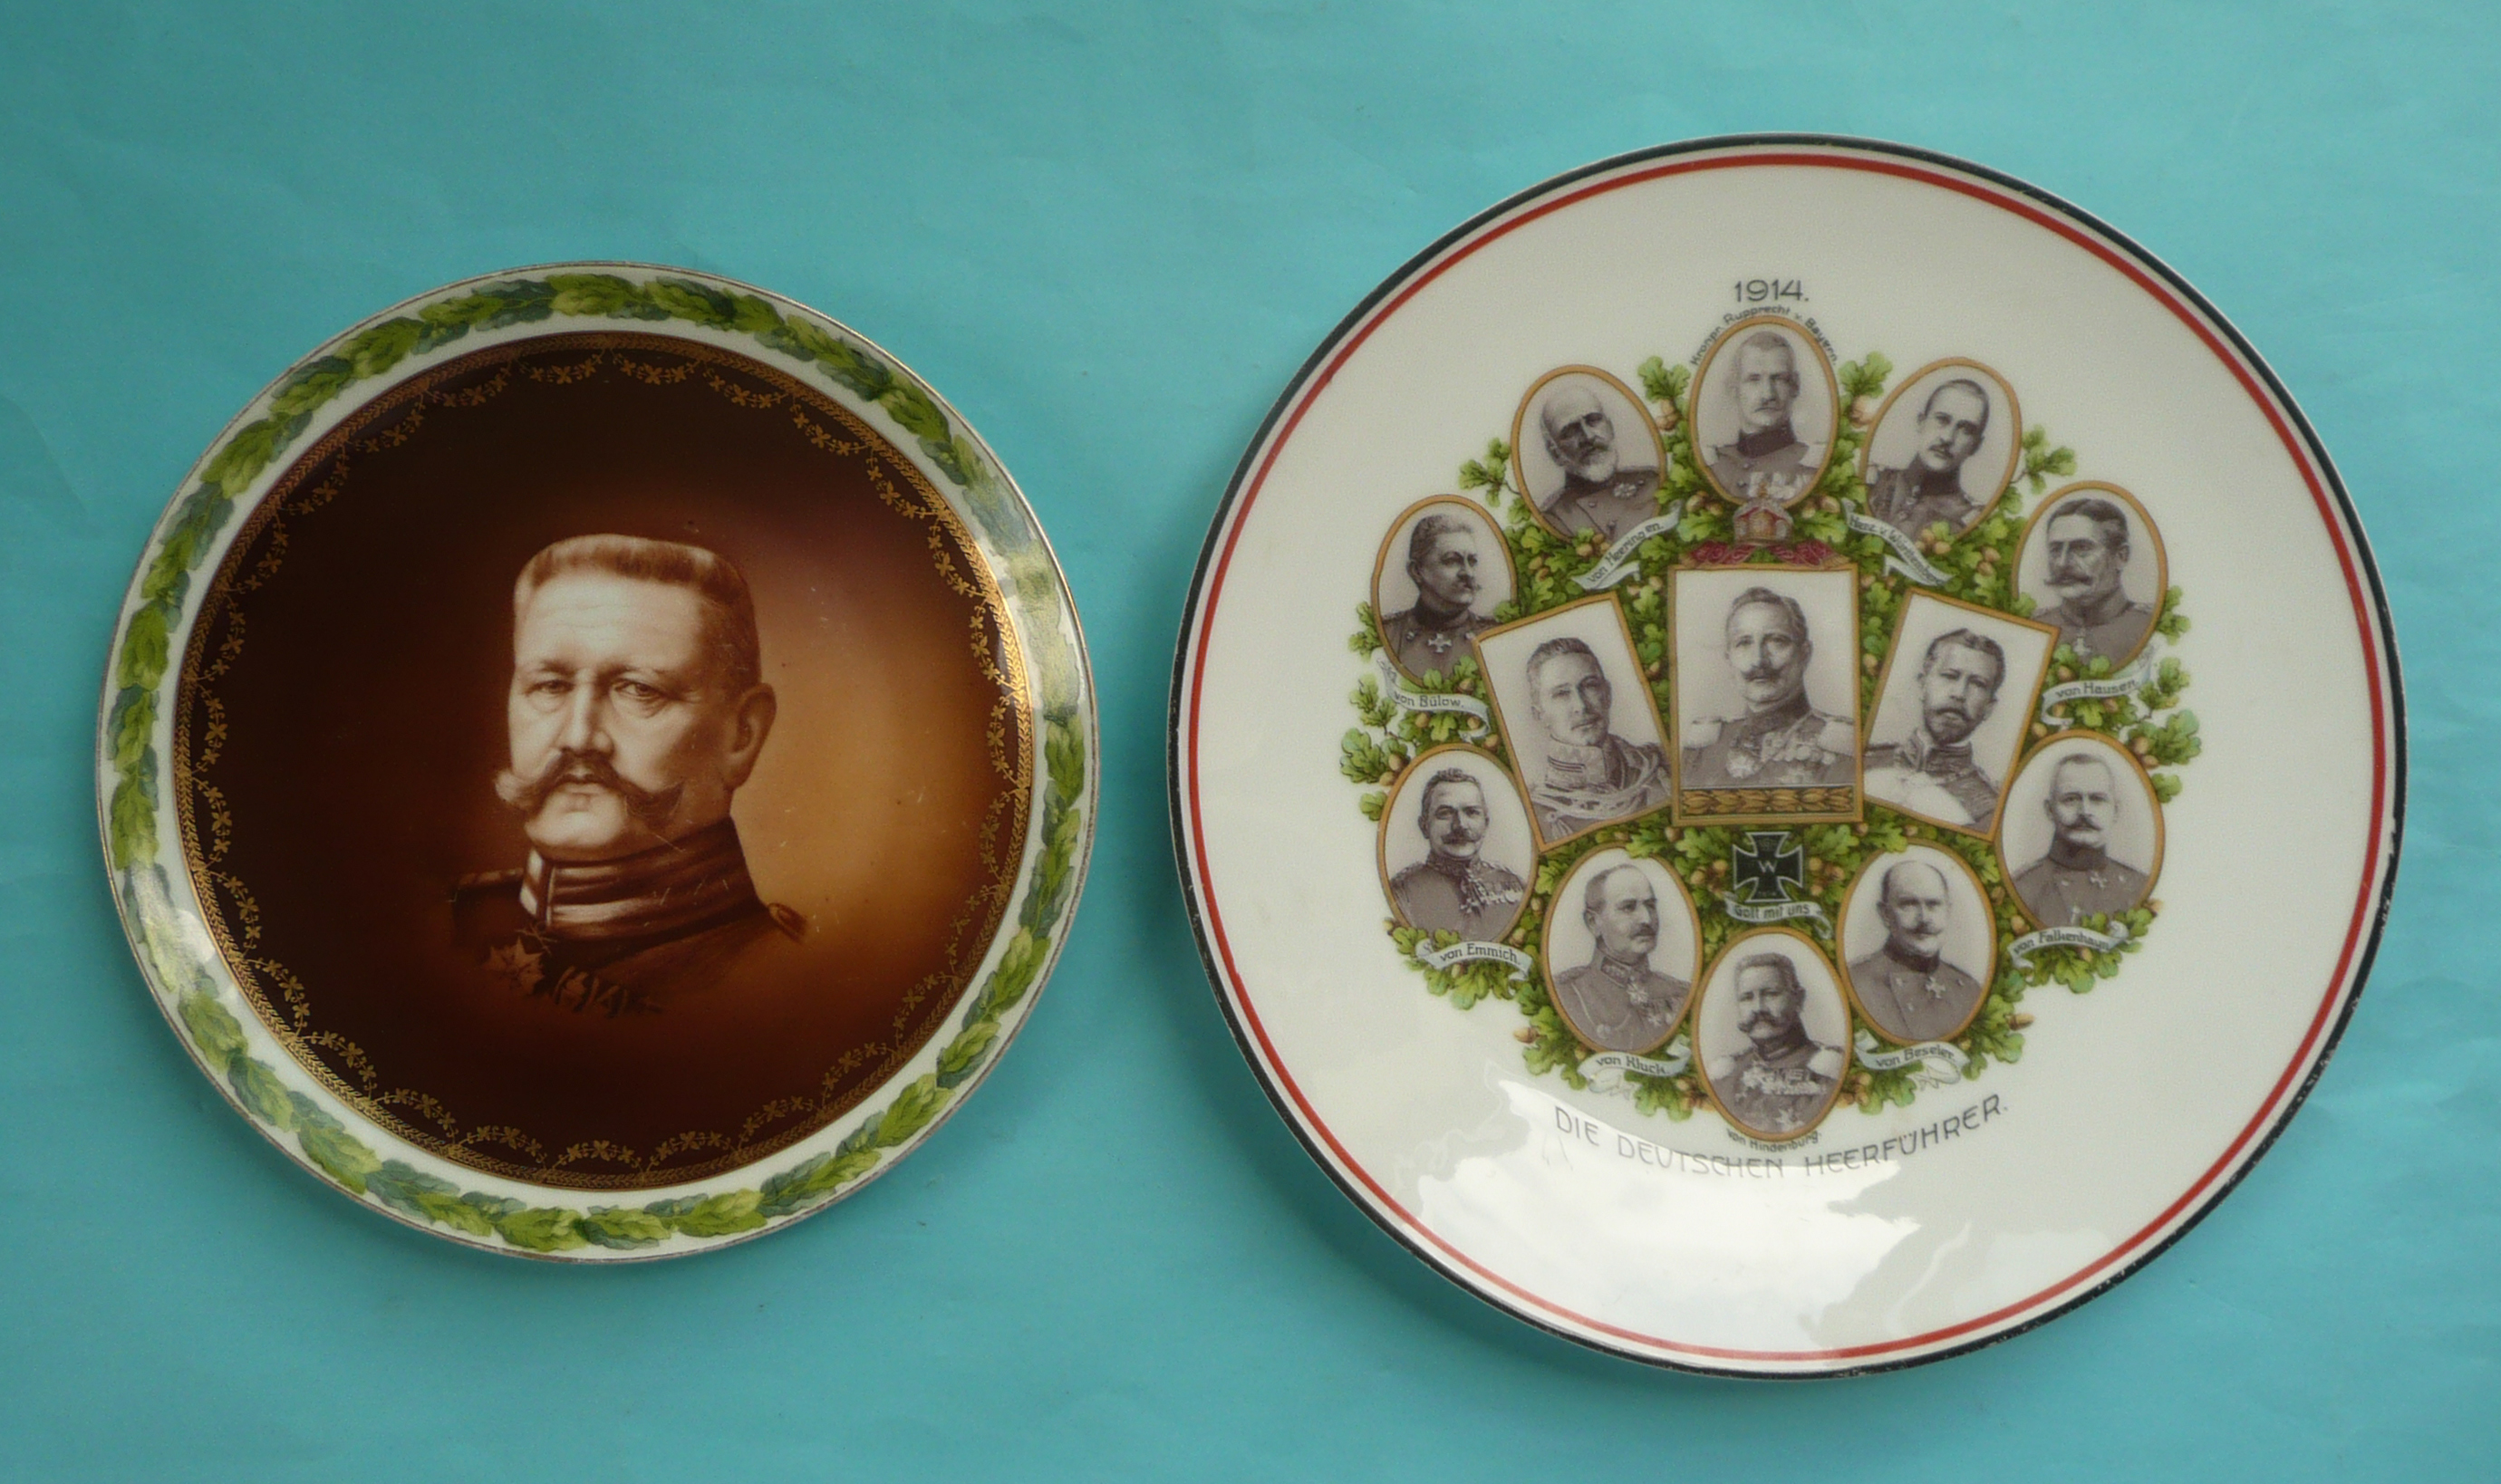 Lot 57 - World War I: a German porcelain plate with sepia portrait of Hindenburg and another with named